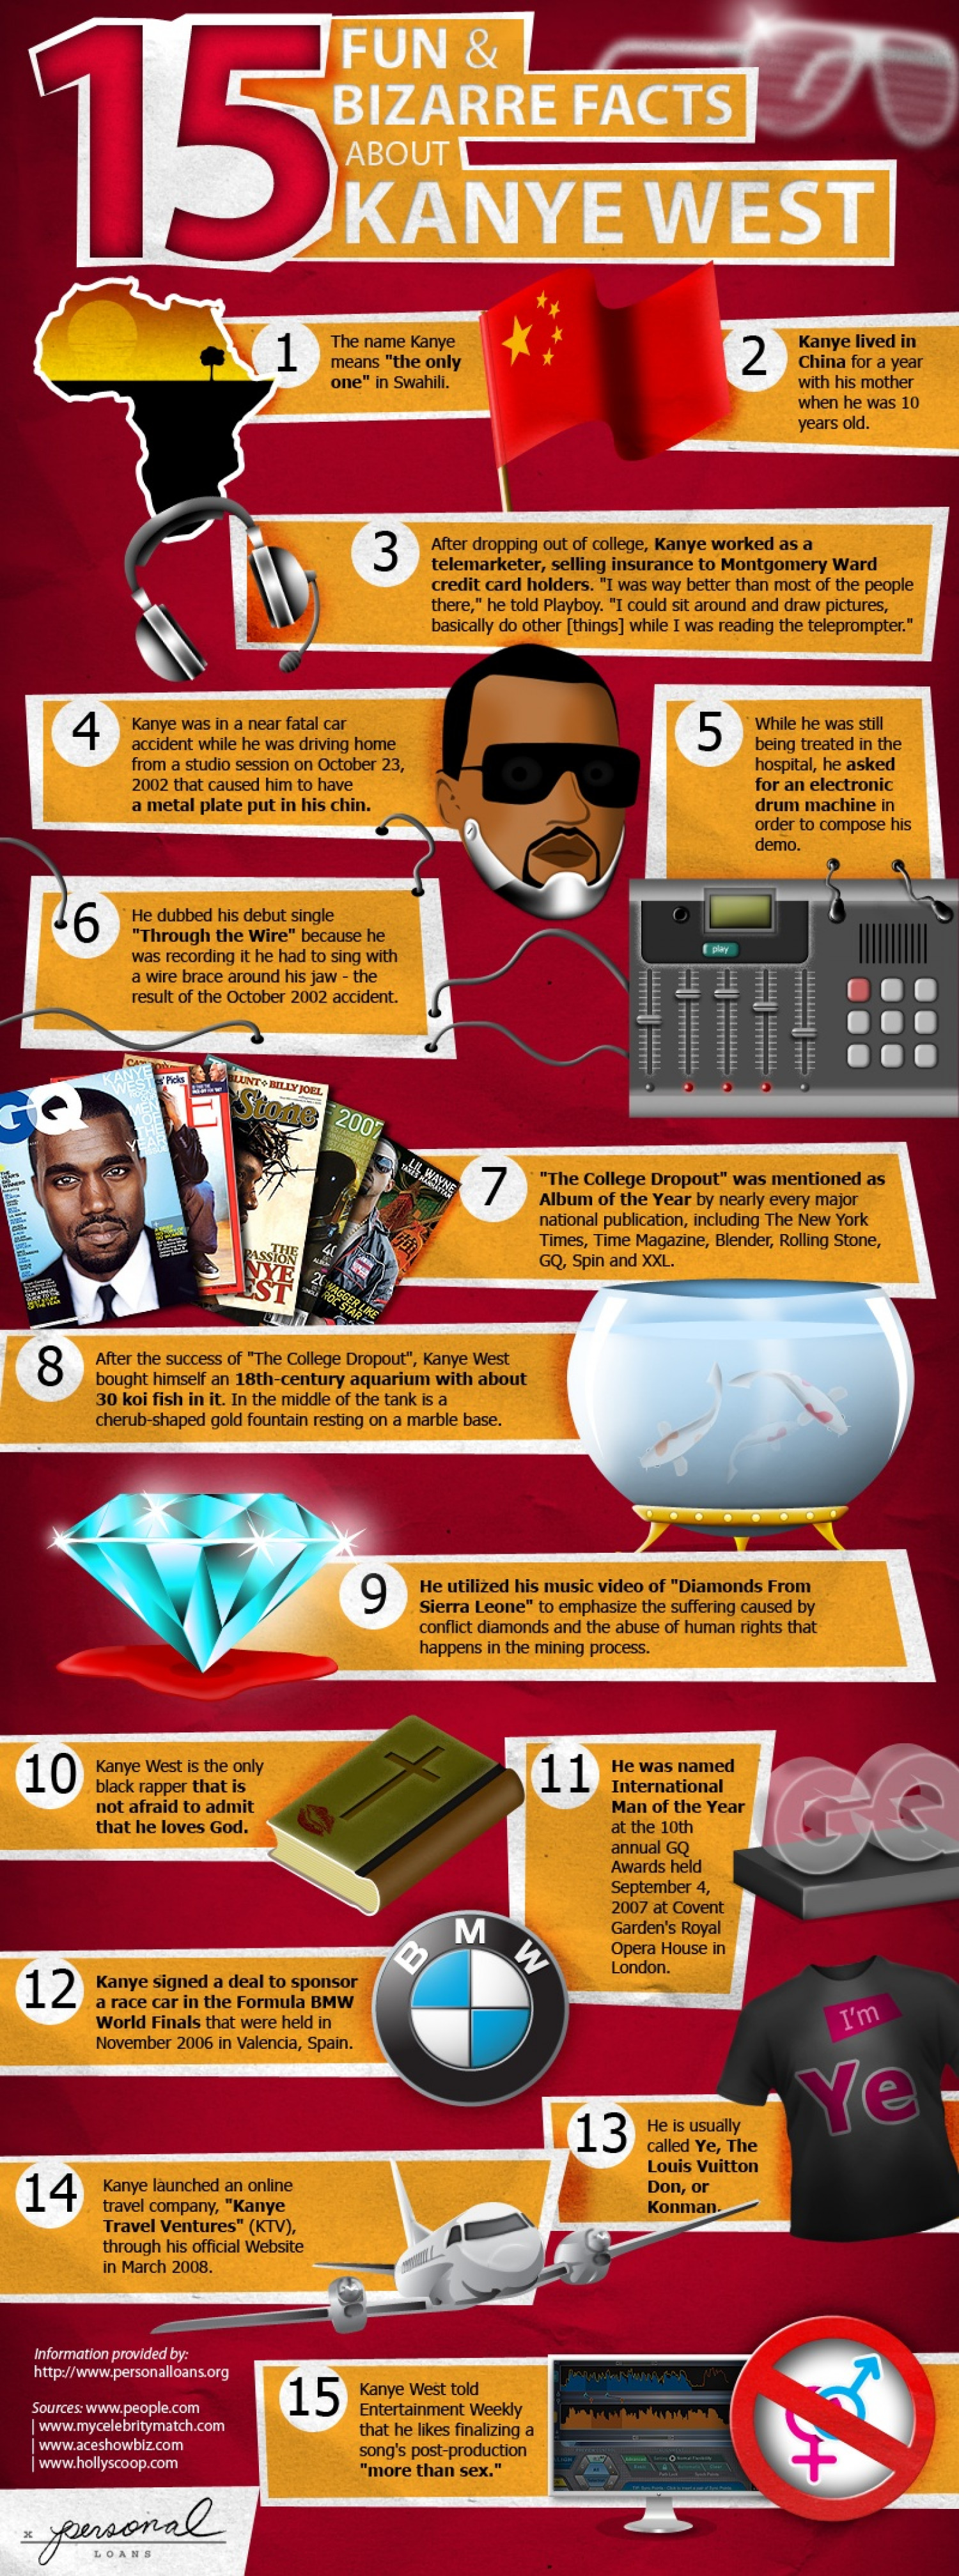 15 Fun & Bizarre Facts About Kanye West Infographic